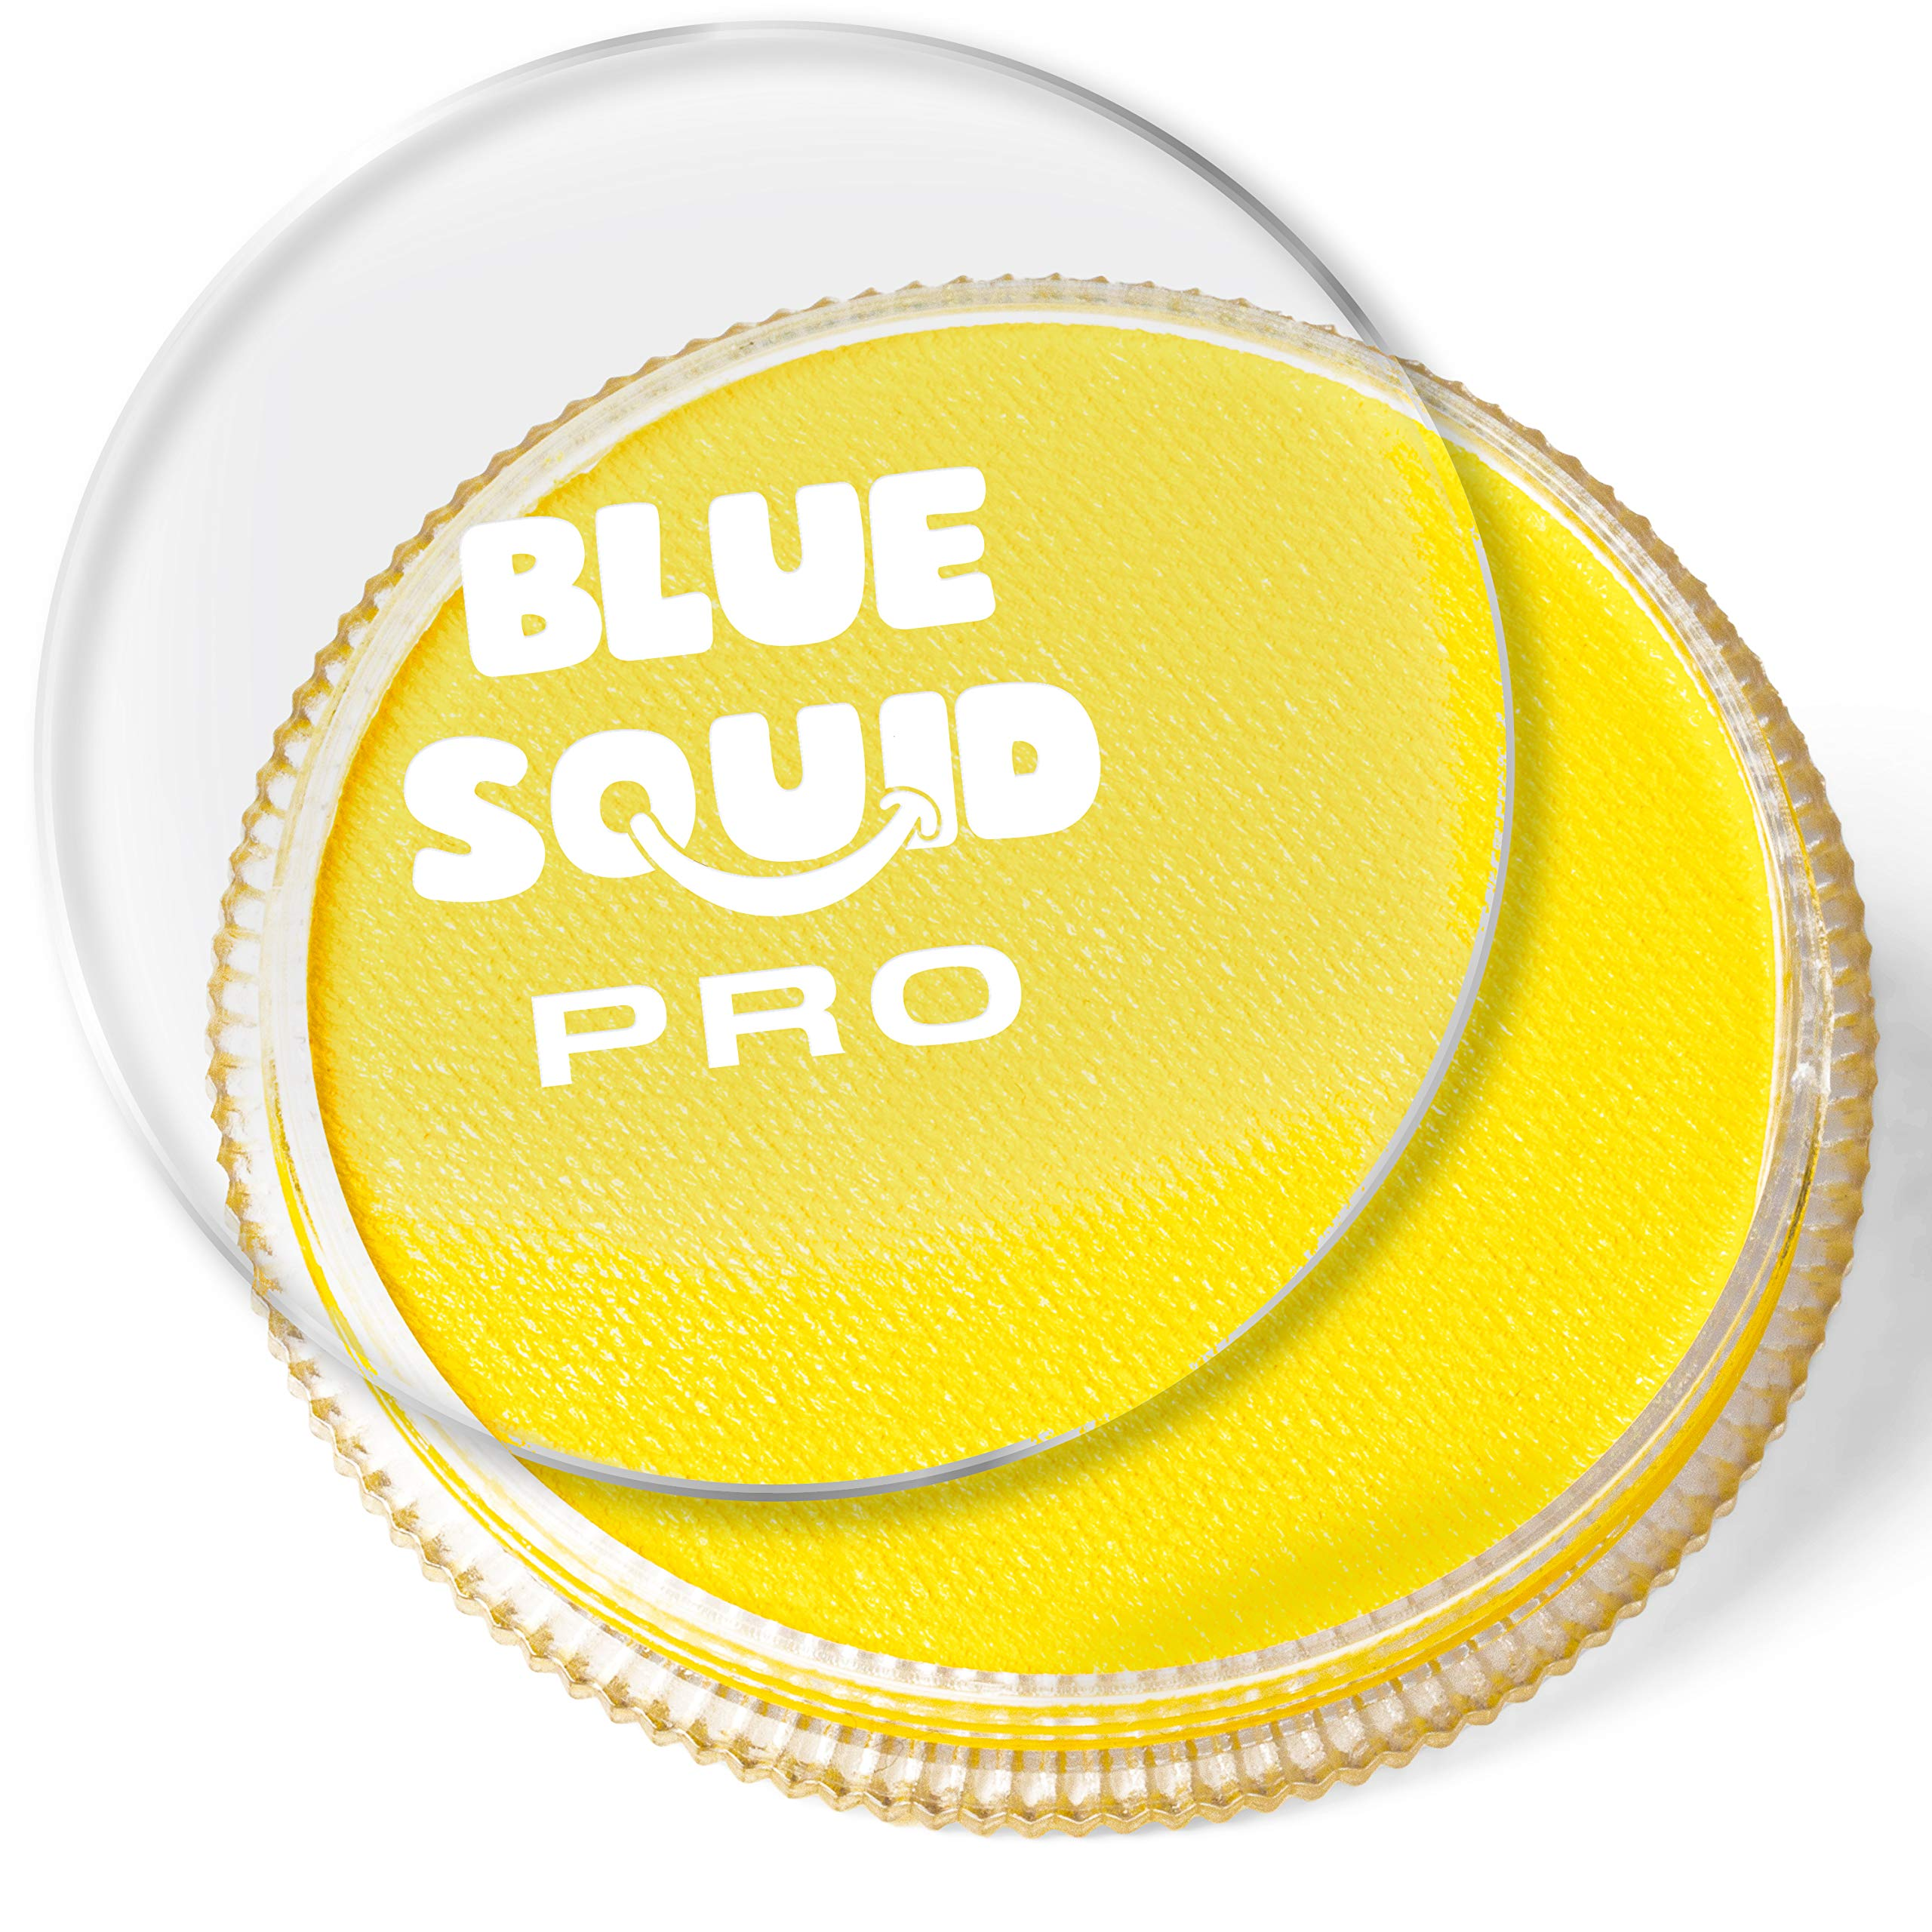 Blue Squid PRO Face Paint - Classic Yellow (30gm), Superior Quality Professional Water Based Single Cake, Face & Body Makeup Supplies for Adults, Kids & SFX